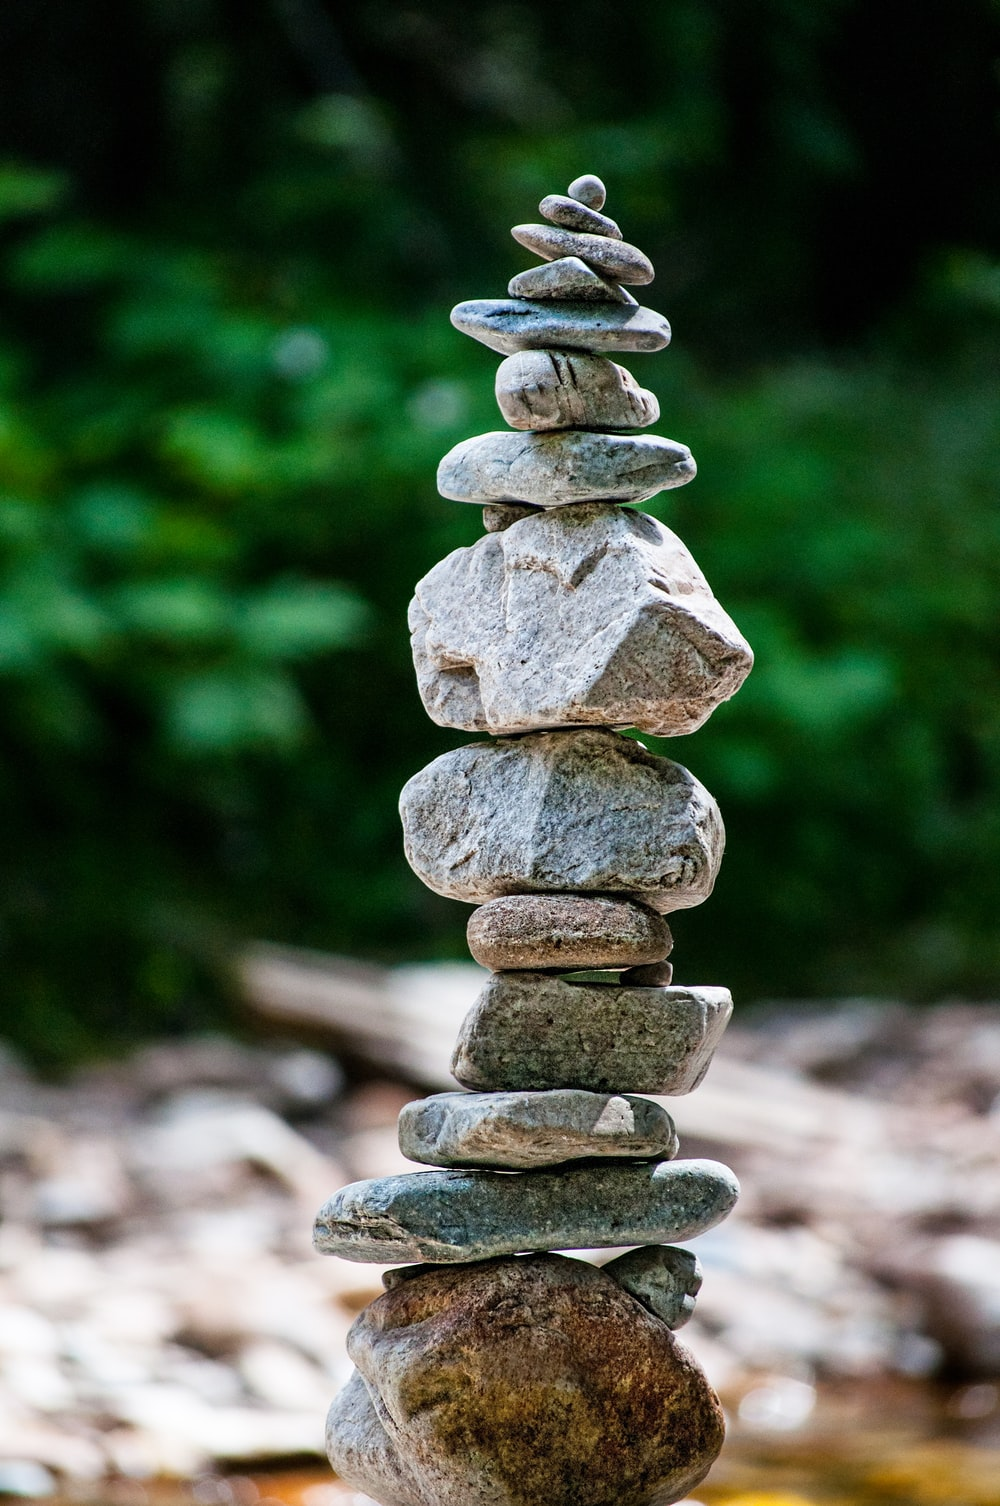 stone balancing in river